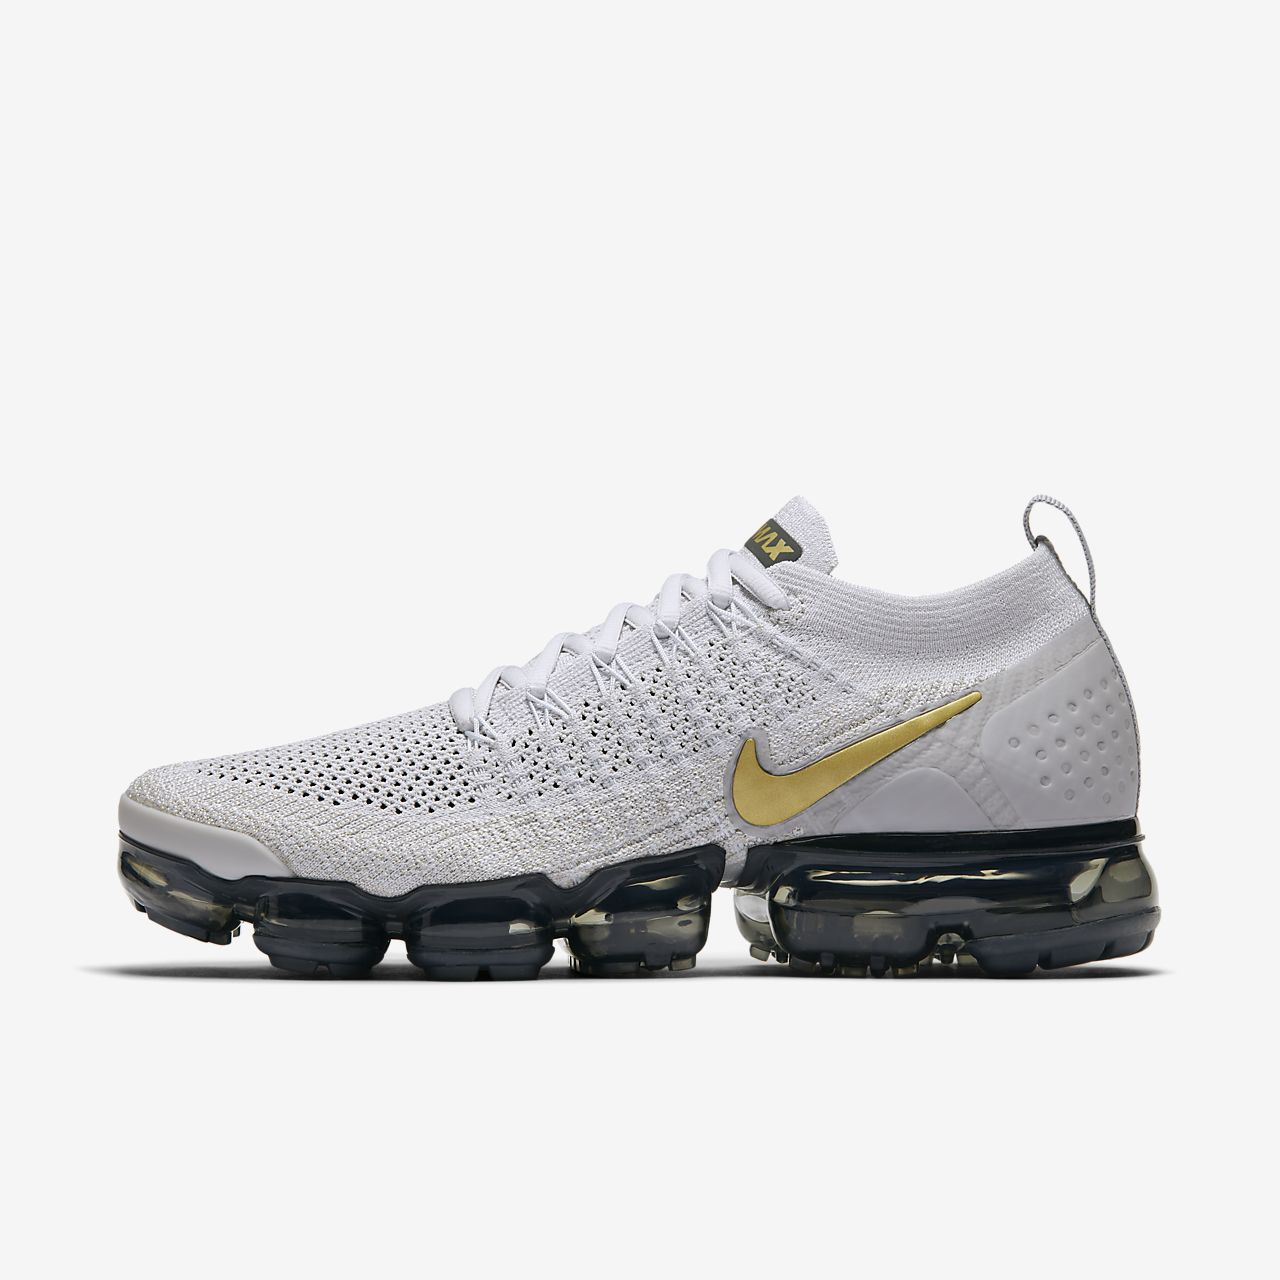 outlet store 2a8a5 f72f4 Calzado para mujer Nike Air VaporMax Flyknit 2